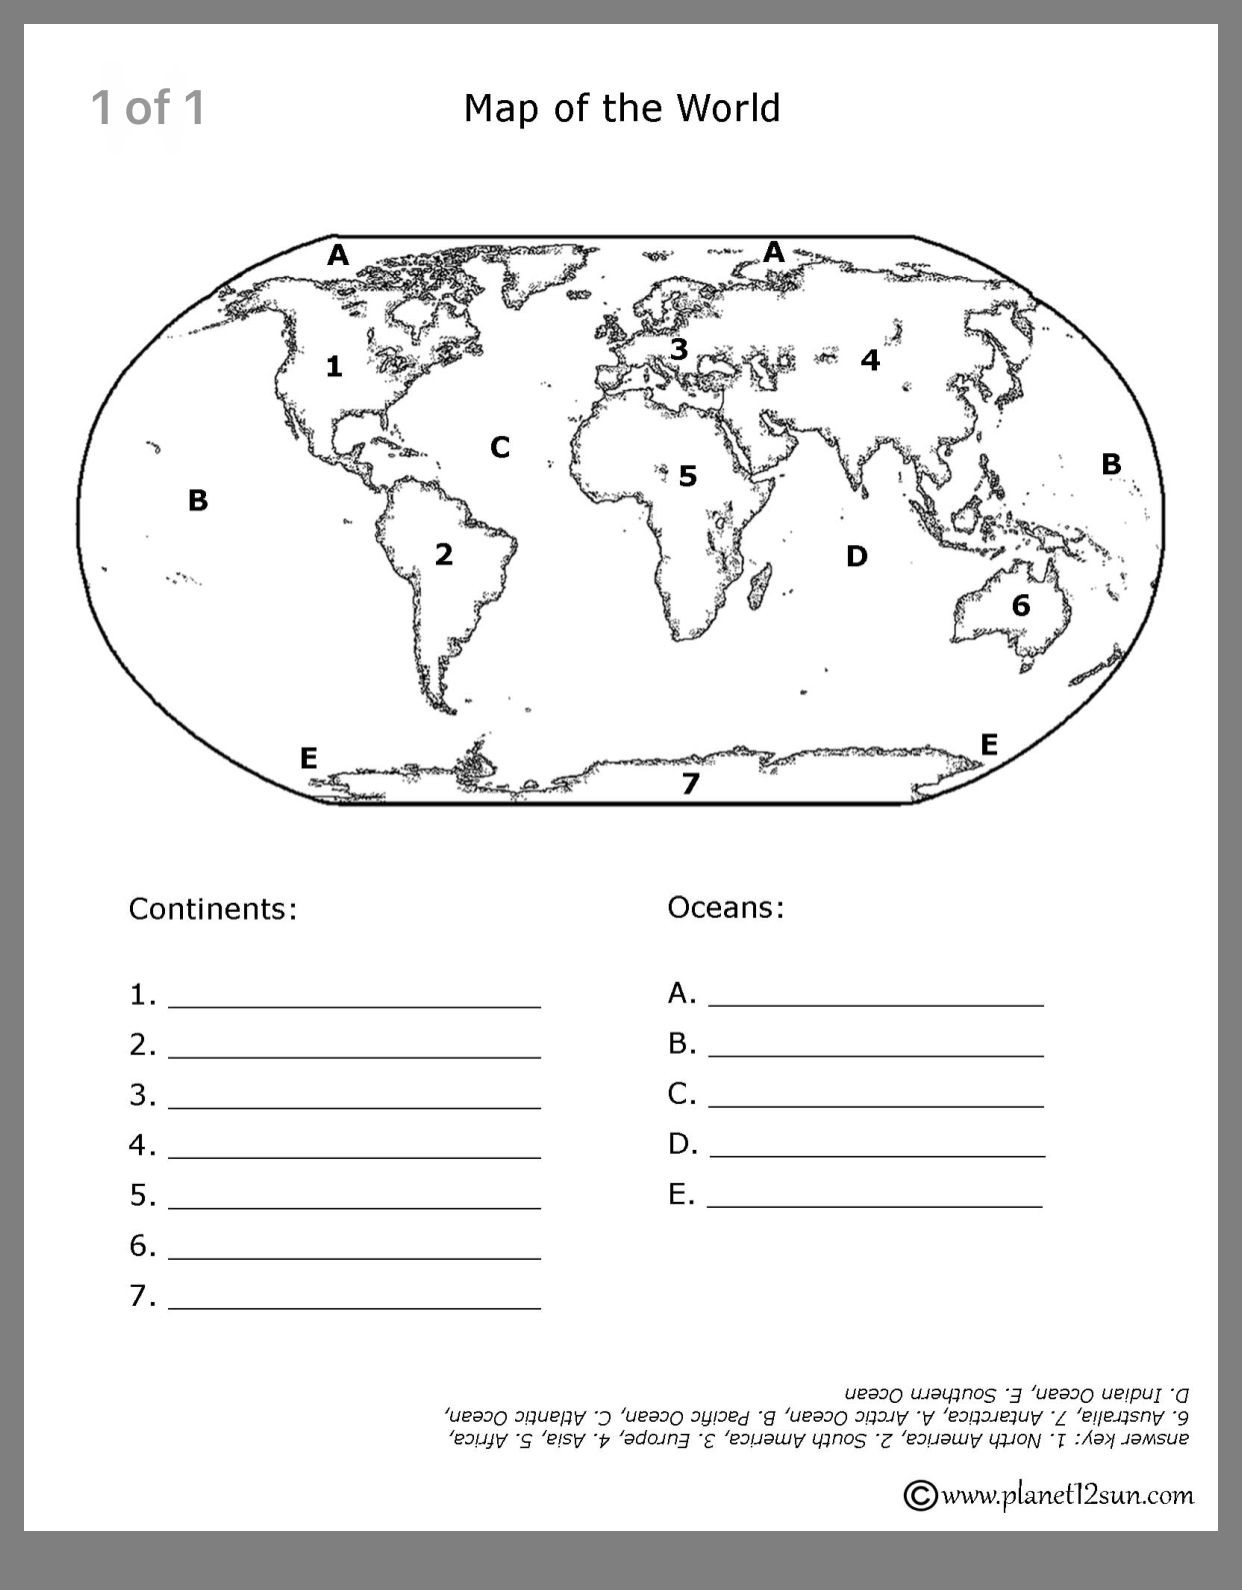 Oceans and Continents Worksheets Printable Pin by Dawn Tran On Geography for Ava with Images